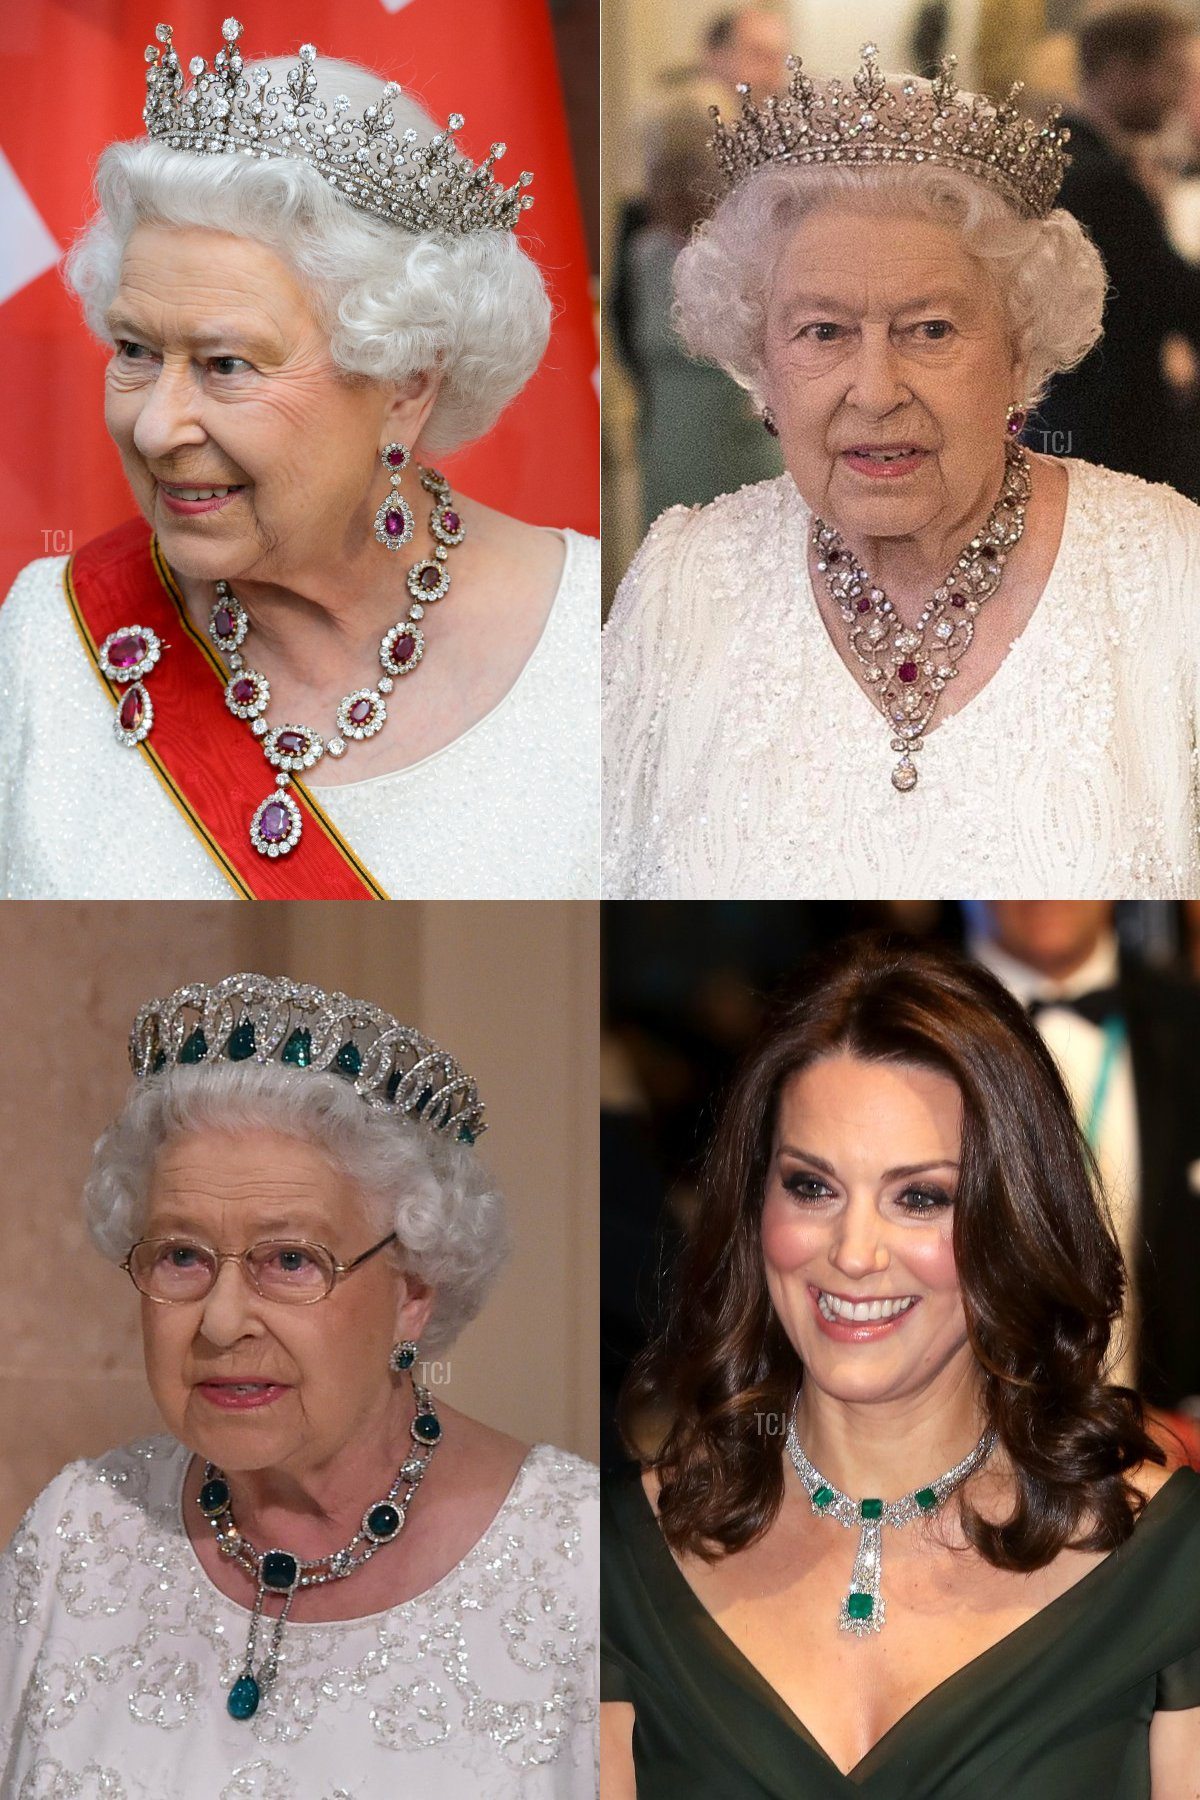 Clockwise (from top L): The Crown Ruby Necklace, The Greville Ruby Necklace, Kate's Modern Emerald Necklace, and the Delhi Durbar Necklace